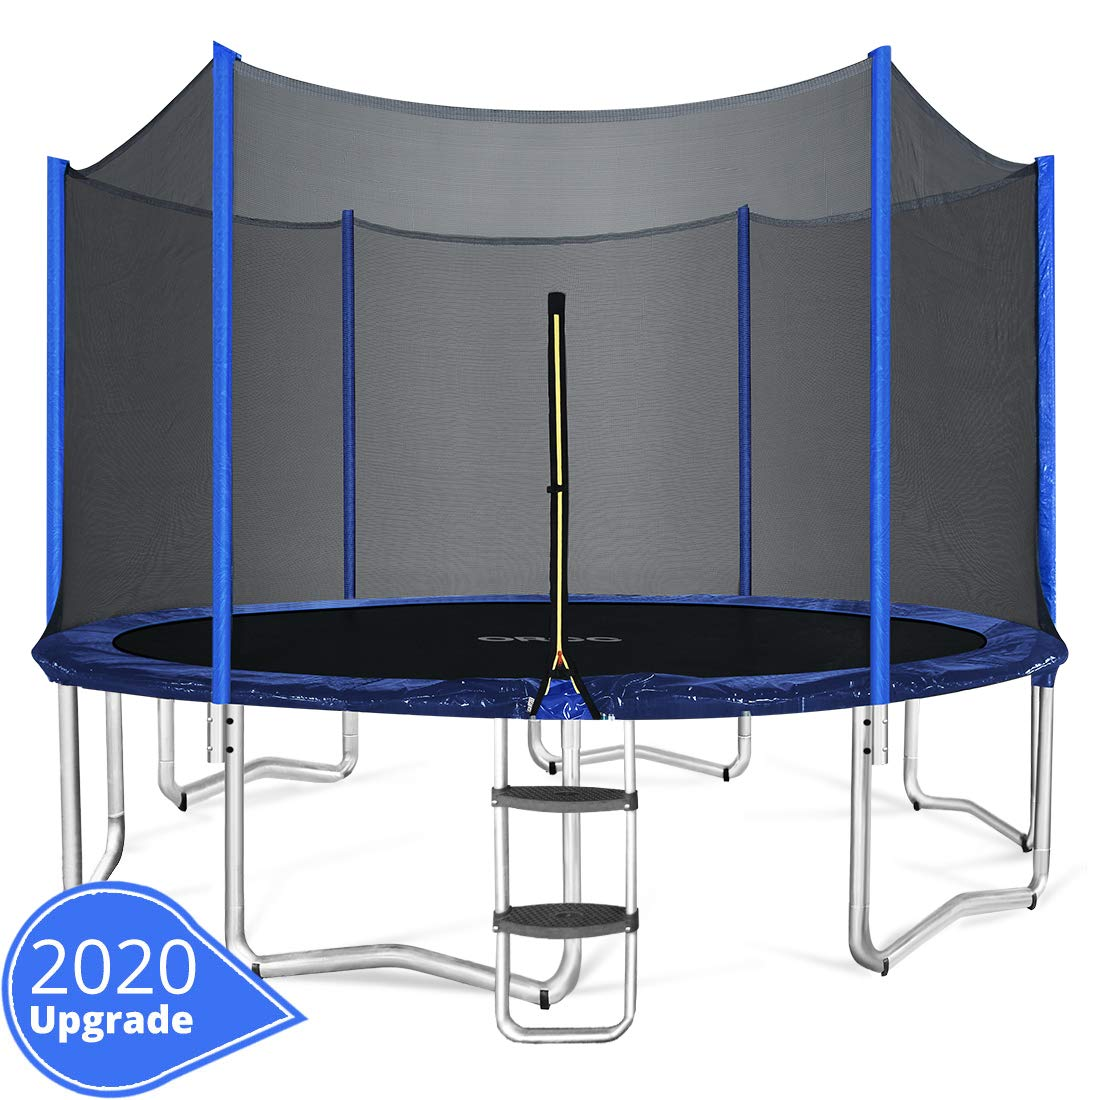 ORCC 15FT 12FT Kids Trampoline, TUV Certificated, with Enclosure Net Jumping Mat and All Accessories, Best Gift for Kids (12 feet) by ORCC (Image #1)